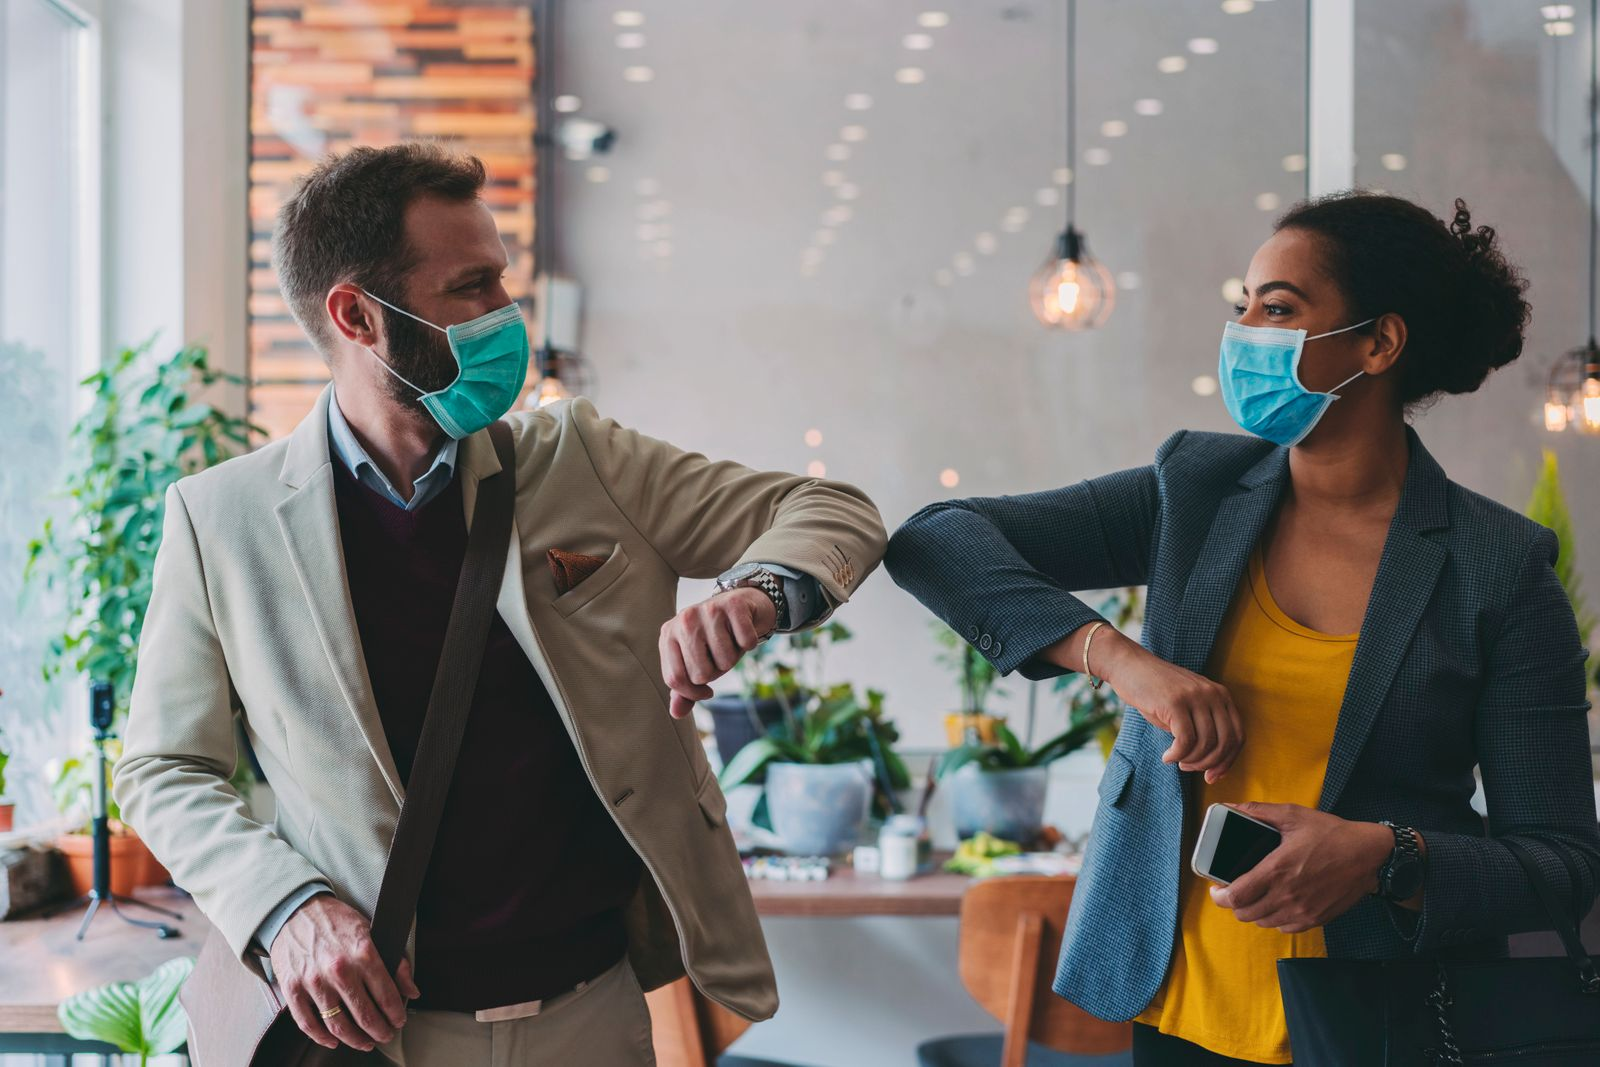 Business people greeting during COVID-19 pandemic, elbow bump